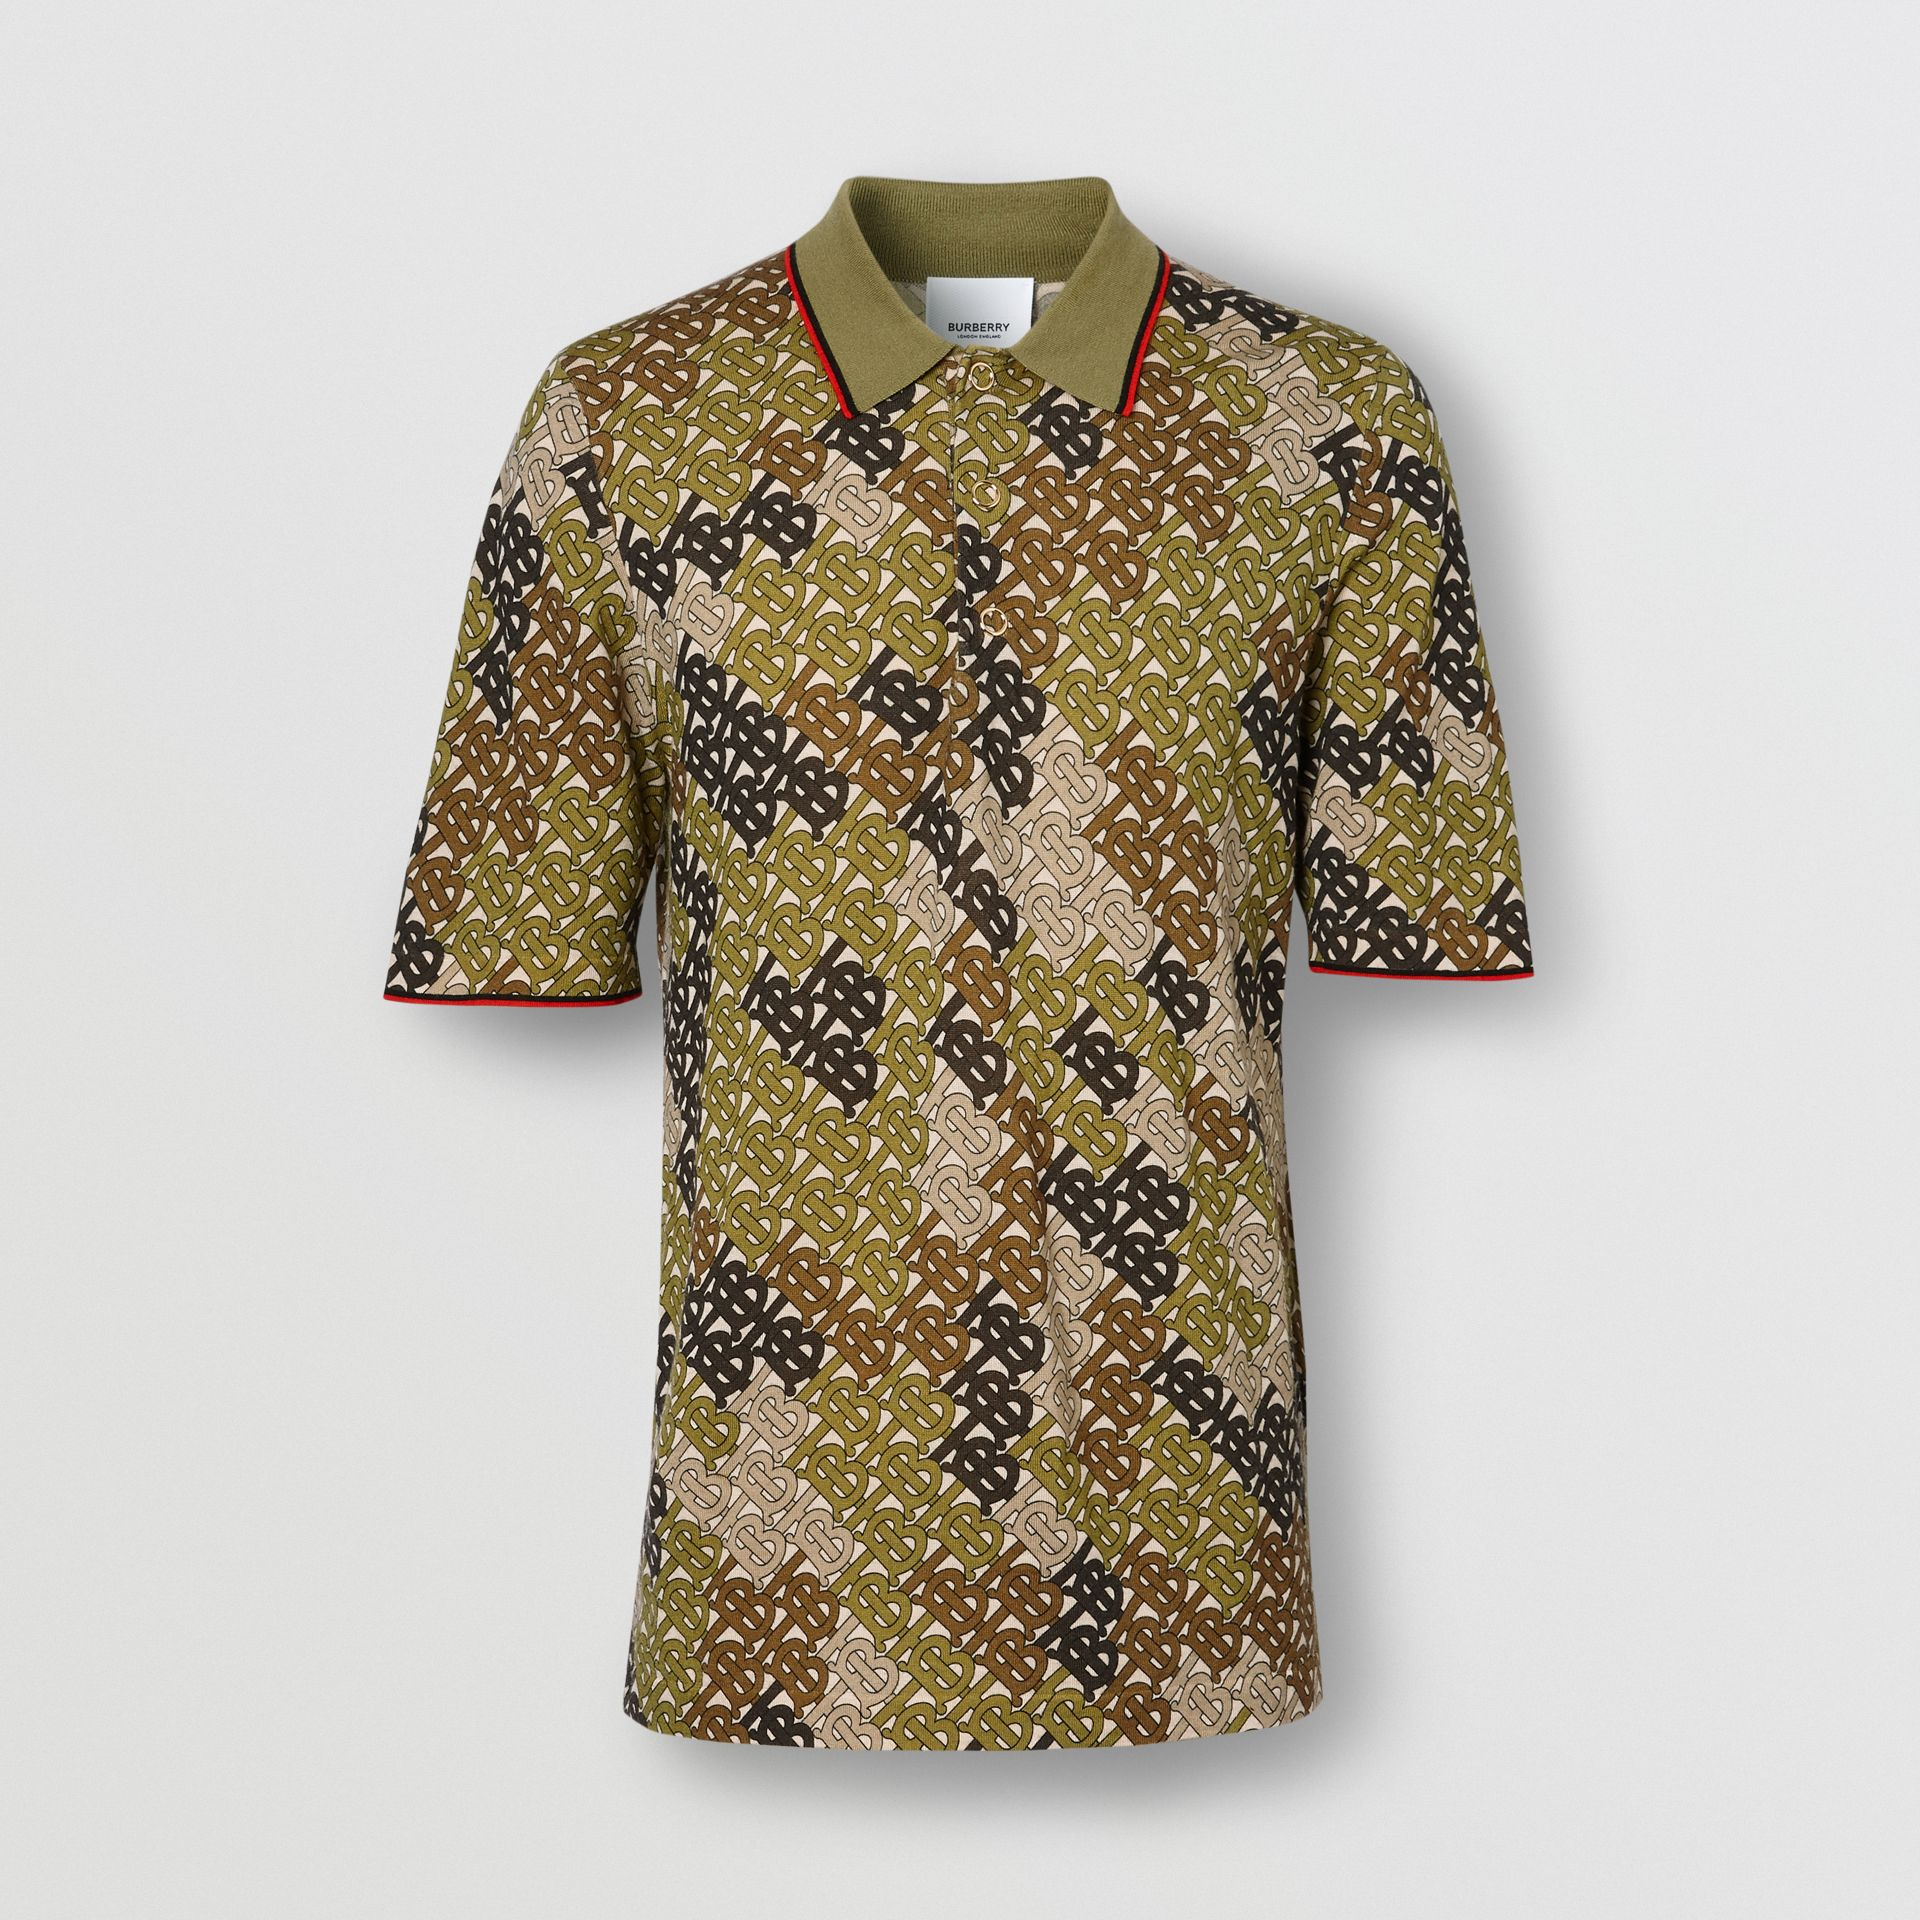 Monogram Print Tipped Merino Wool Polo Shirt in Khaki - Men | Burberry - gallery image 3